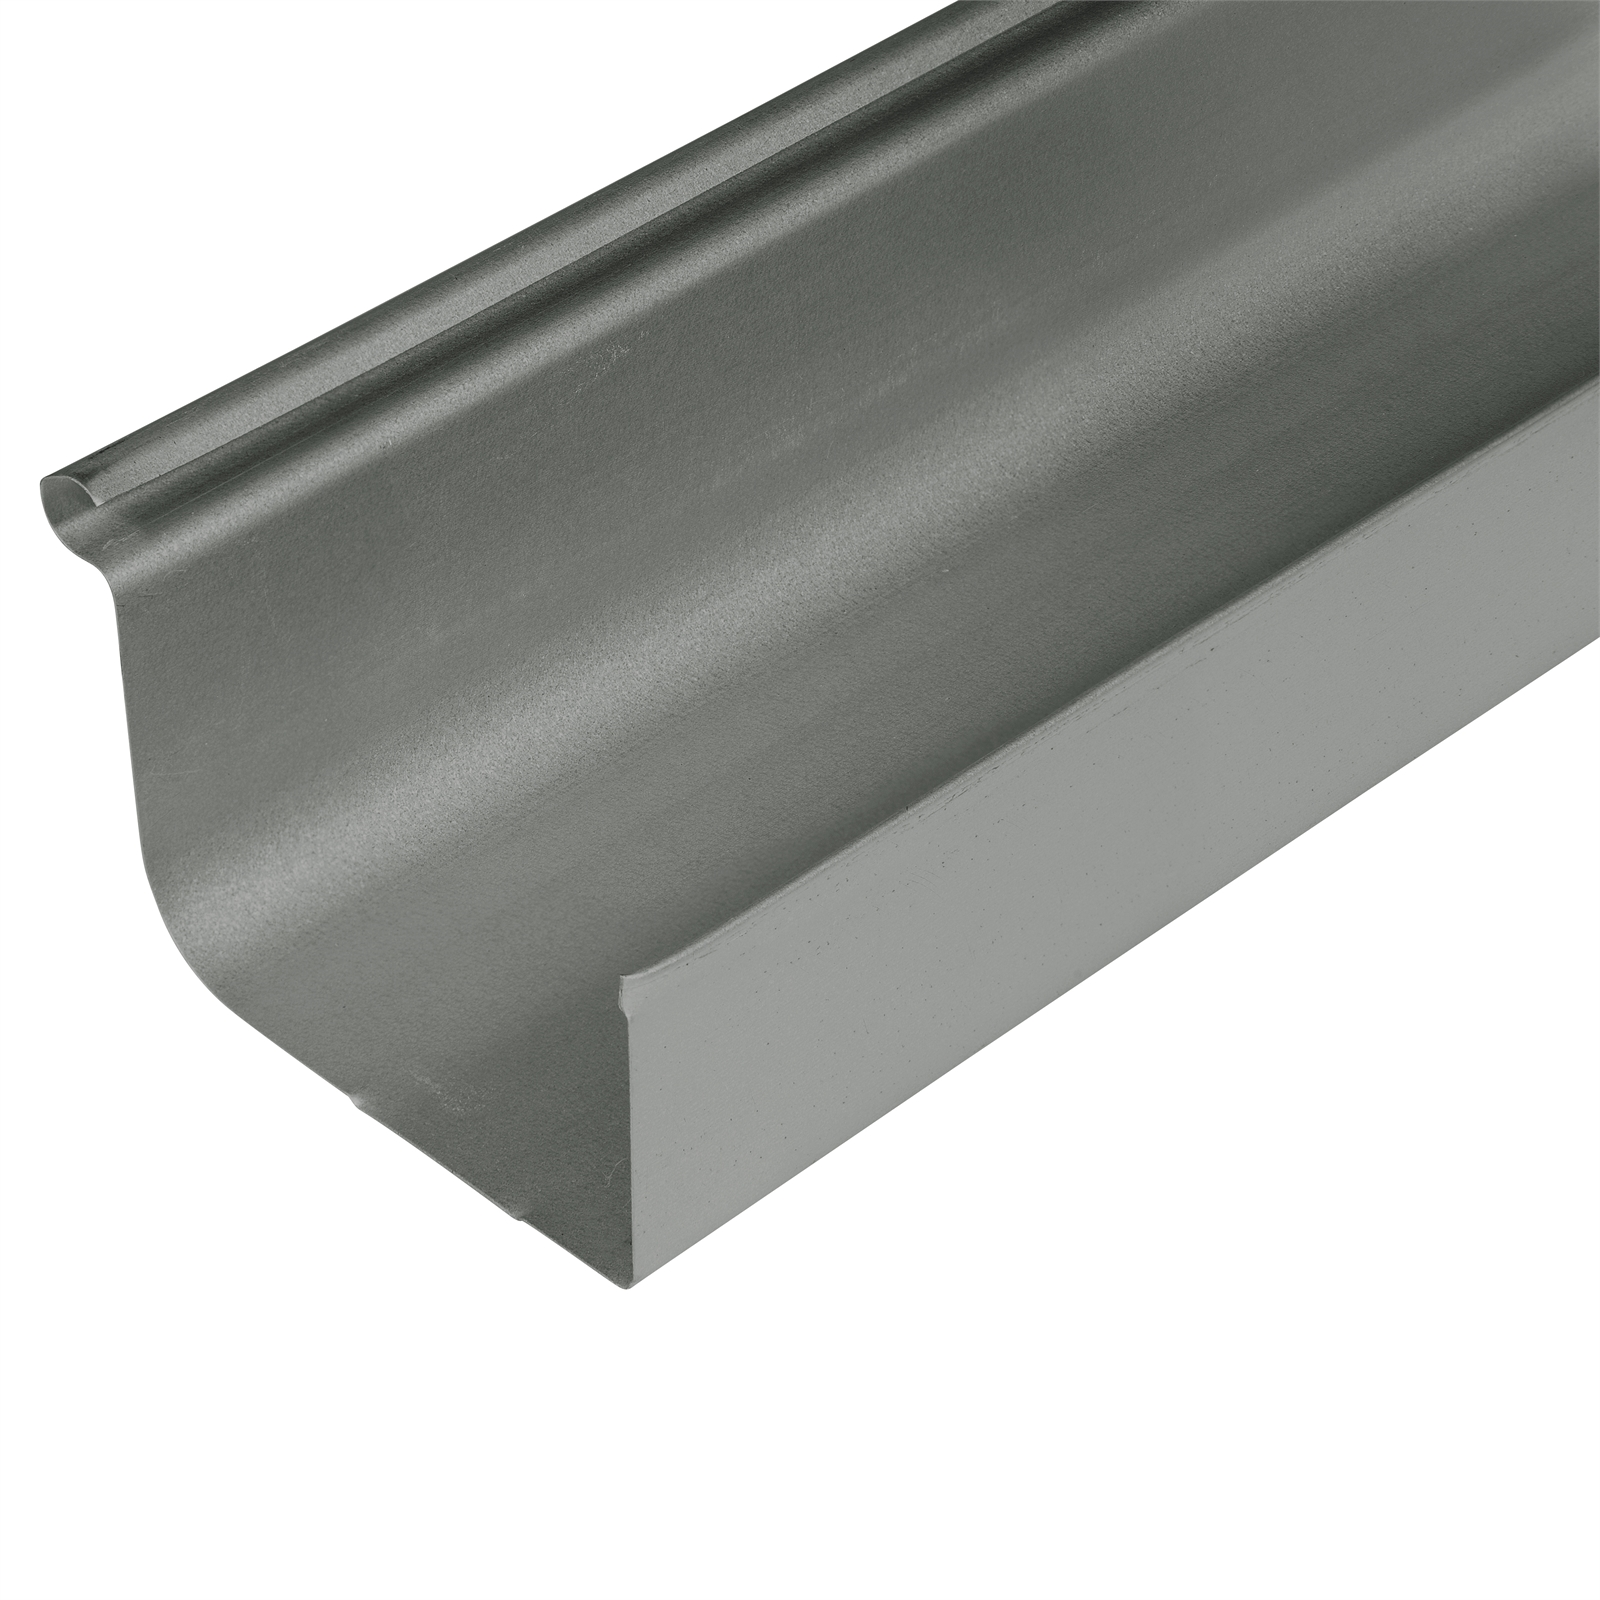 Colorbond steel 0 42 x 115mm x 3 0m quad gutter woodland grey